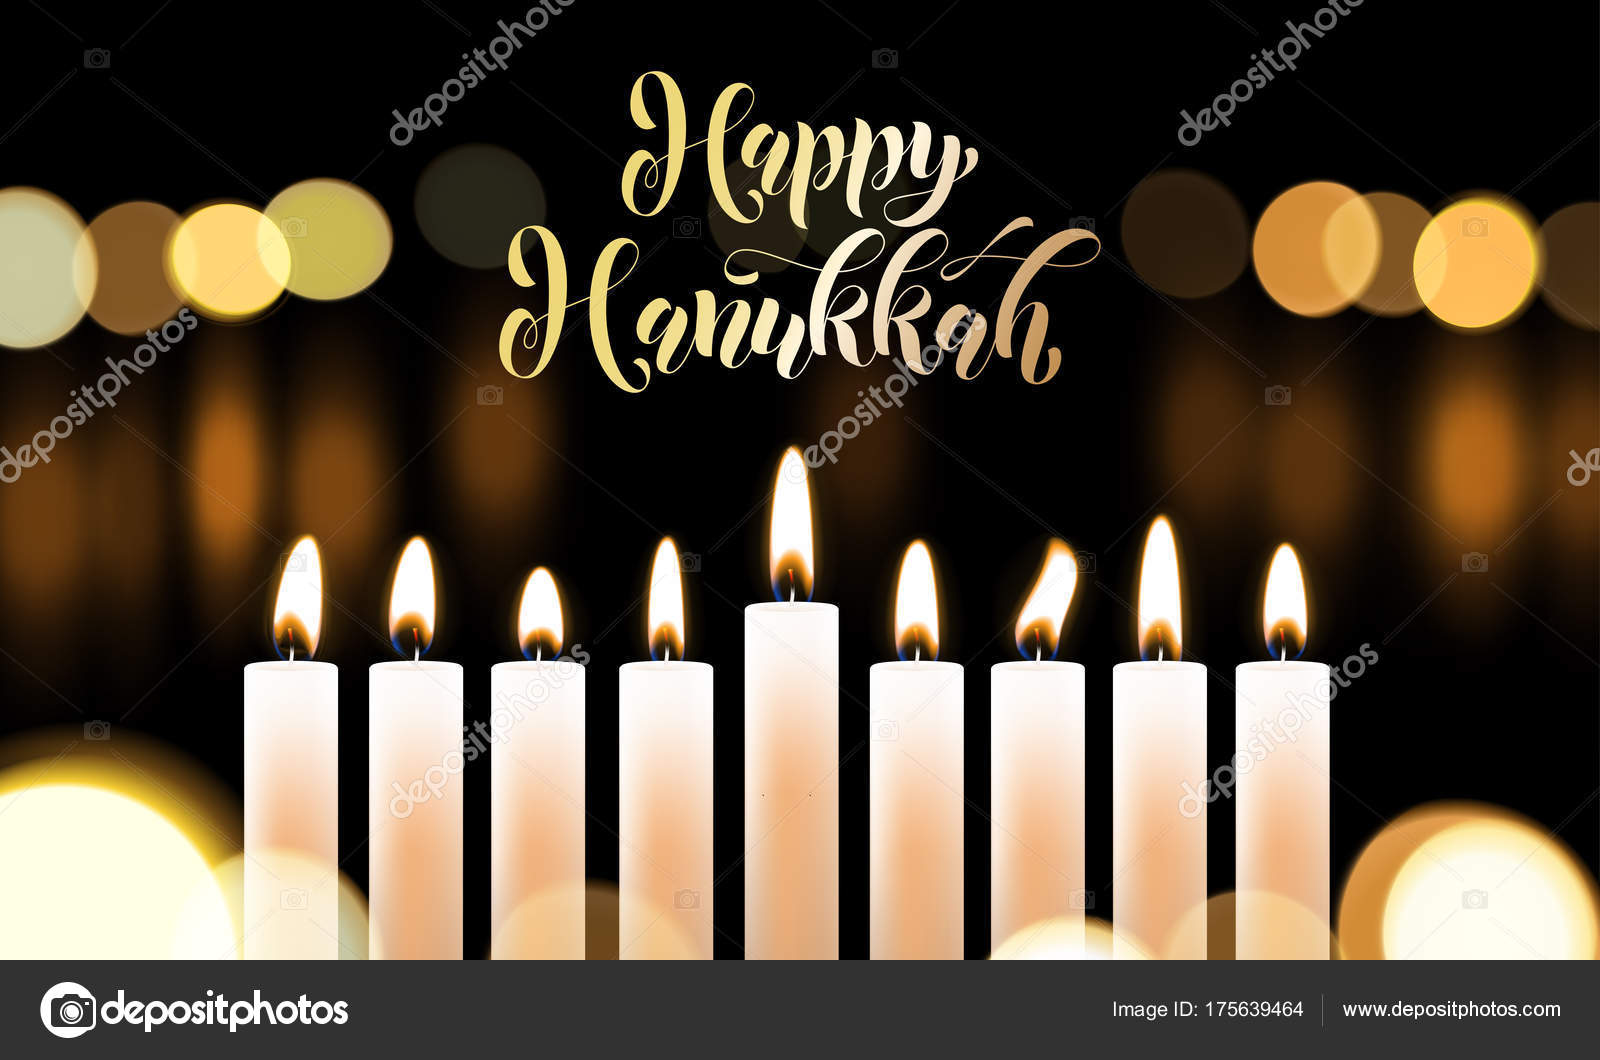 Happy Hanukkah Golden Font And Candles Jewish Holiday Greeting Card Design  Template. Vector Chanukah Or Hanukah Holy Lights Festival Golden  Calligraphy Text ...